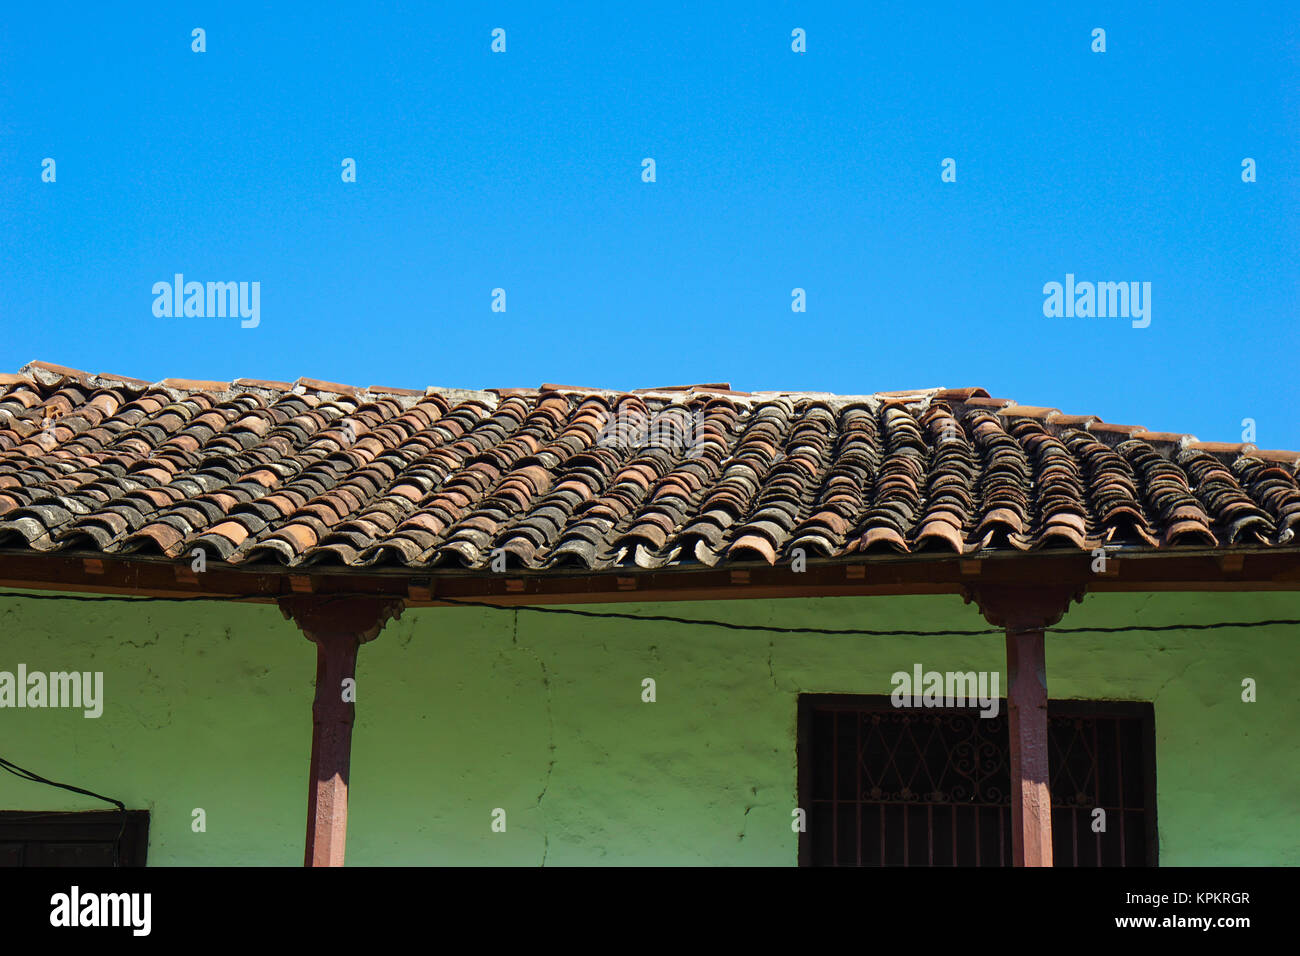 House With Tiled Roof Stock Photos Amp House With Tiled Roof